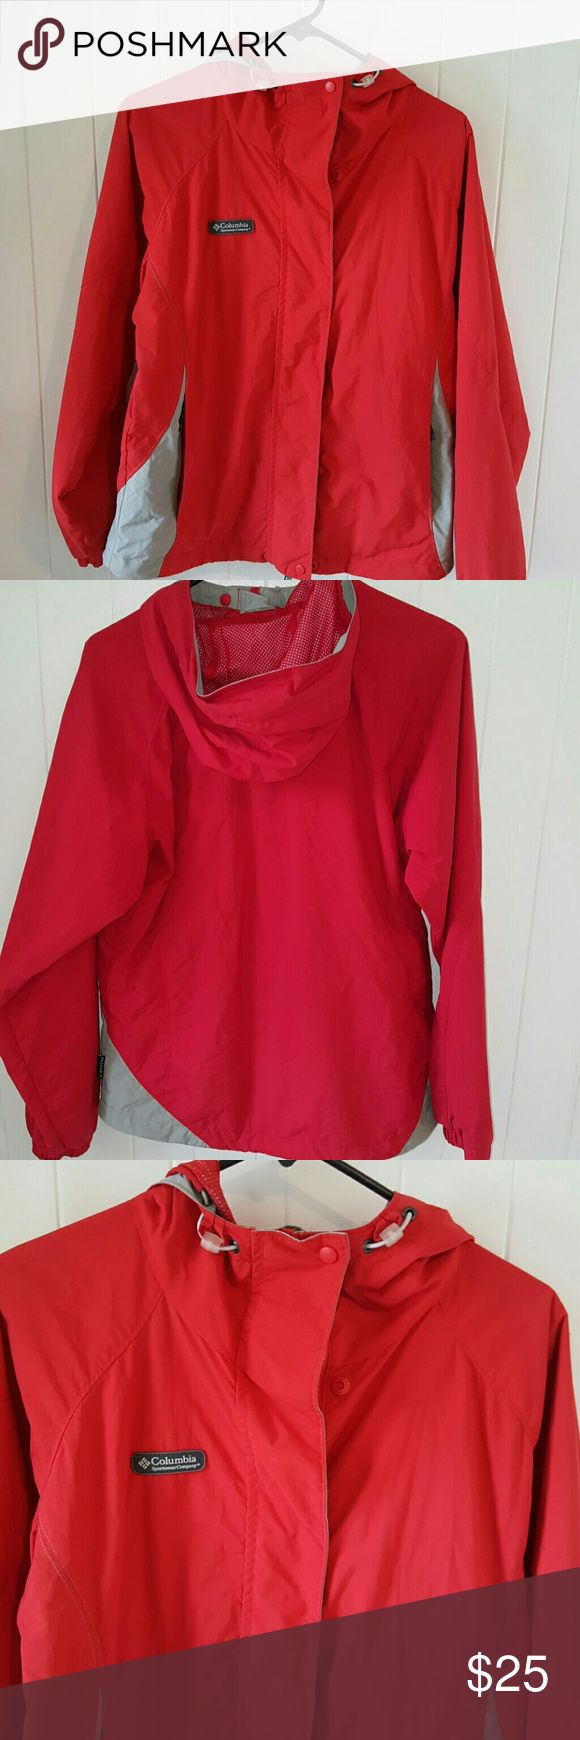 Columbia Sportswear Company size medium red Columbia Sportswear Company size medium Red Jacket full zipper front also snaps ,pull ties for the hood two zippered pockets tag on the back says packable nice lining Columbia Sportswear Company Size medium women's  Red and grey  Logo on front  Zipper and snaps  Packable  Thank you for checking out my closet more to come Tib2015 Columbia Jackets & Coats Utility Jackets